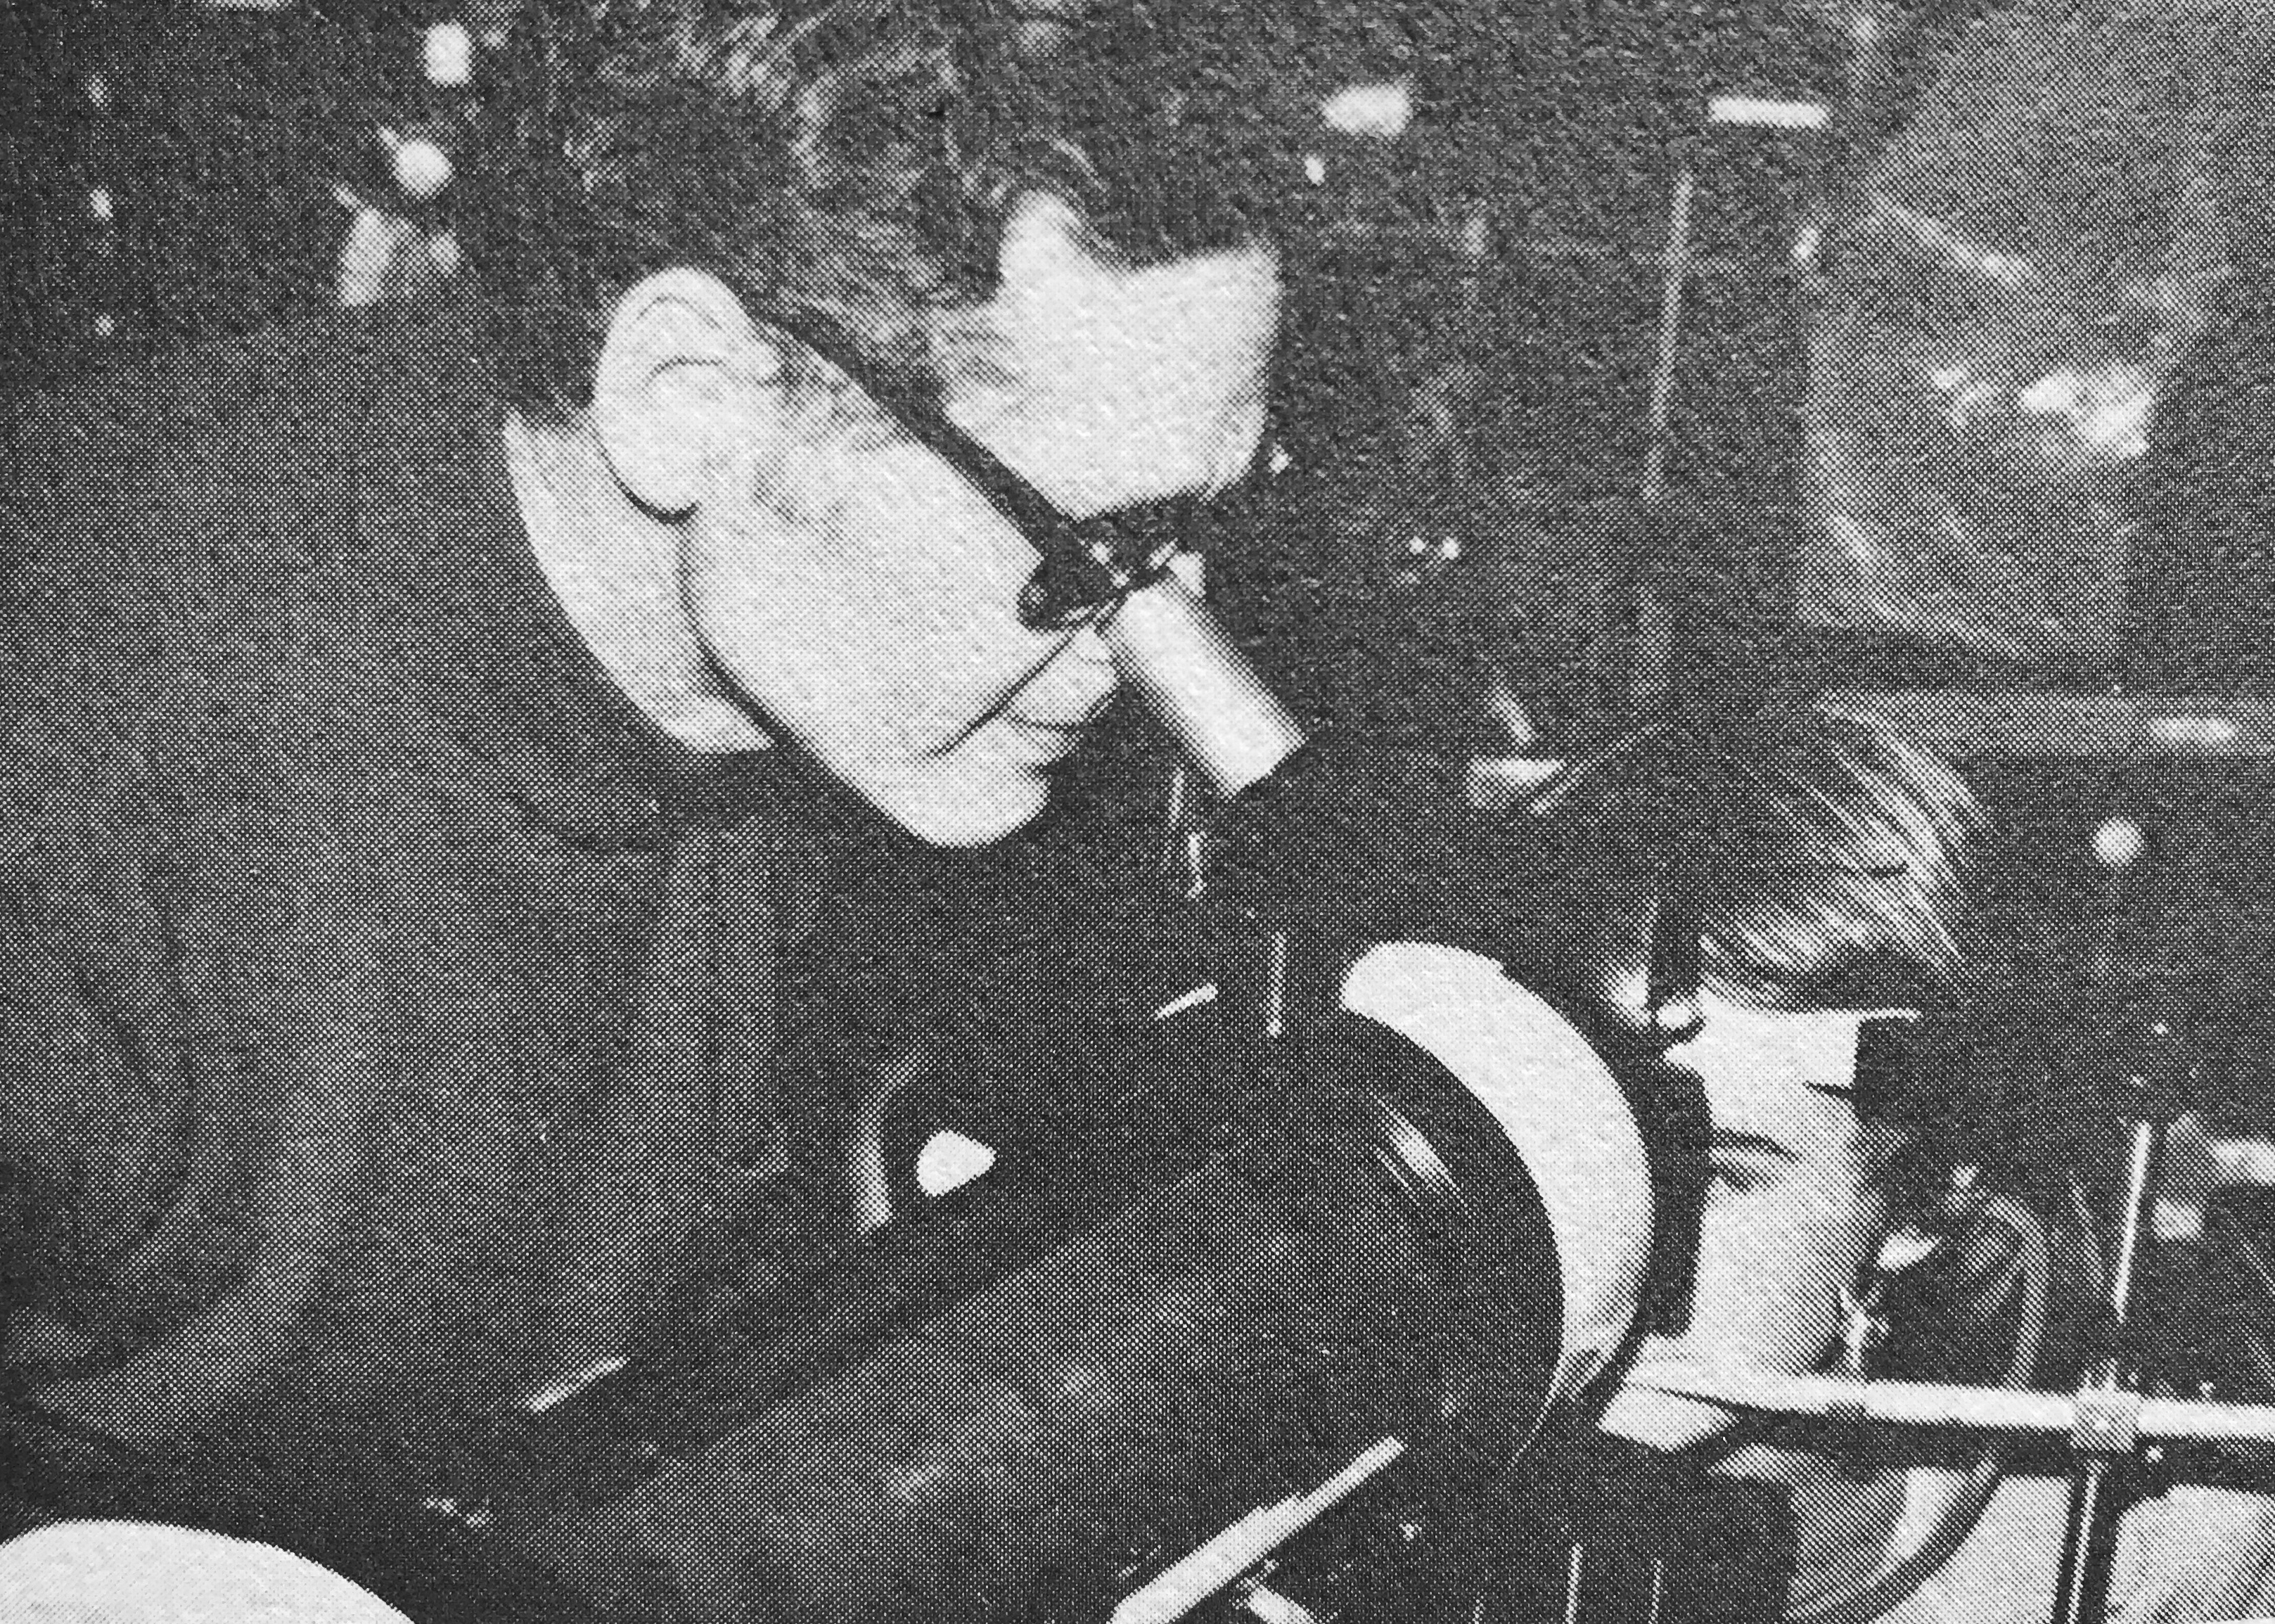 Niles Roth, O.D. conducting an experiment.